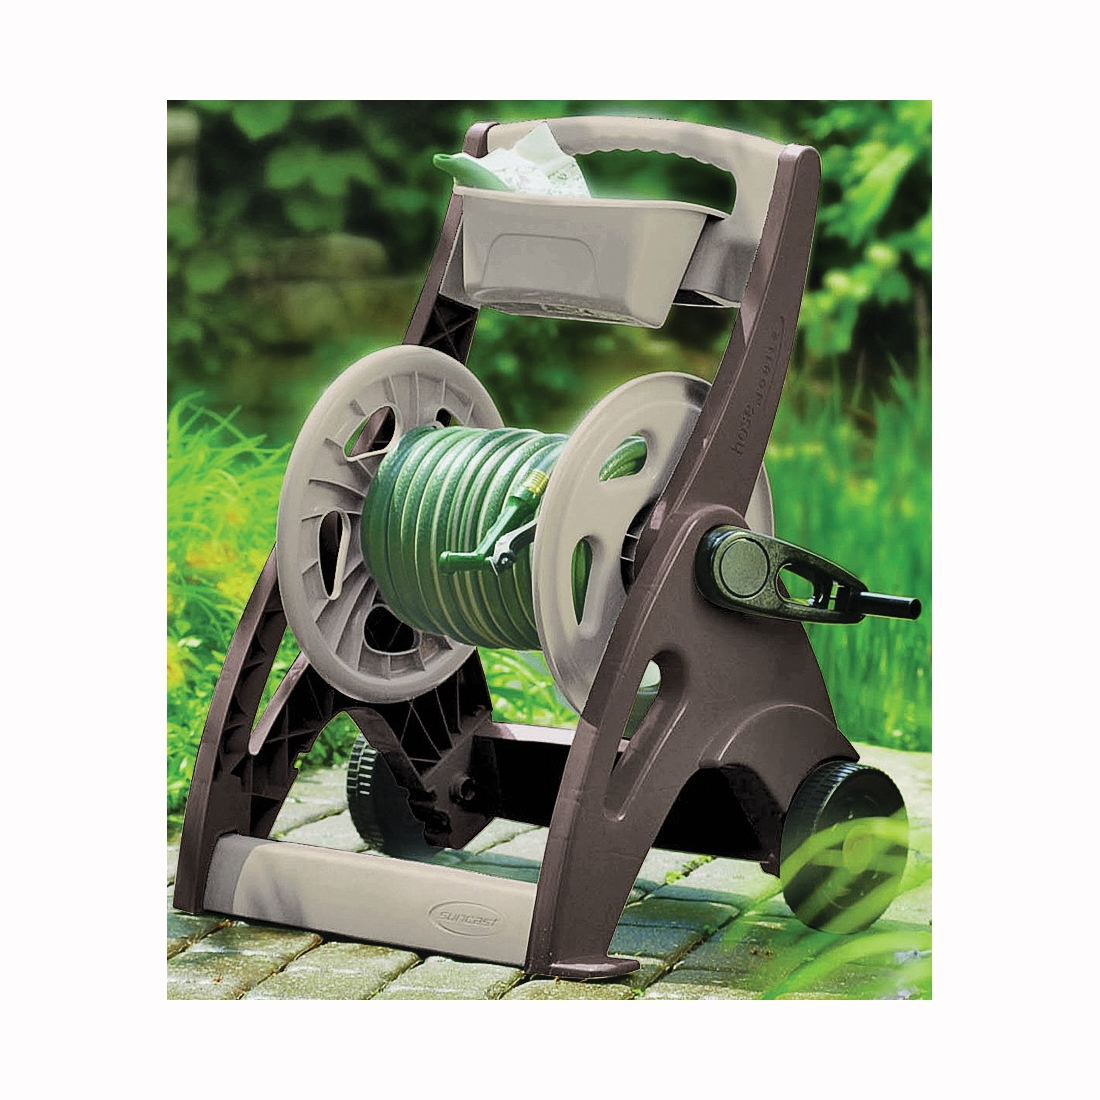 Picture of Suncast SFB200B Hose Reel Cart, 5/8 in Hose, 225 ft of 5/8 in Hose, Crank Handle, Resin